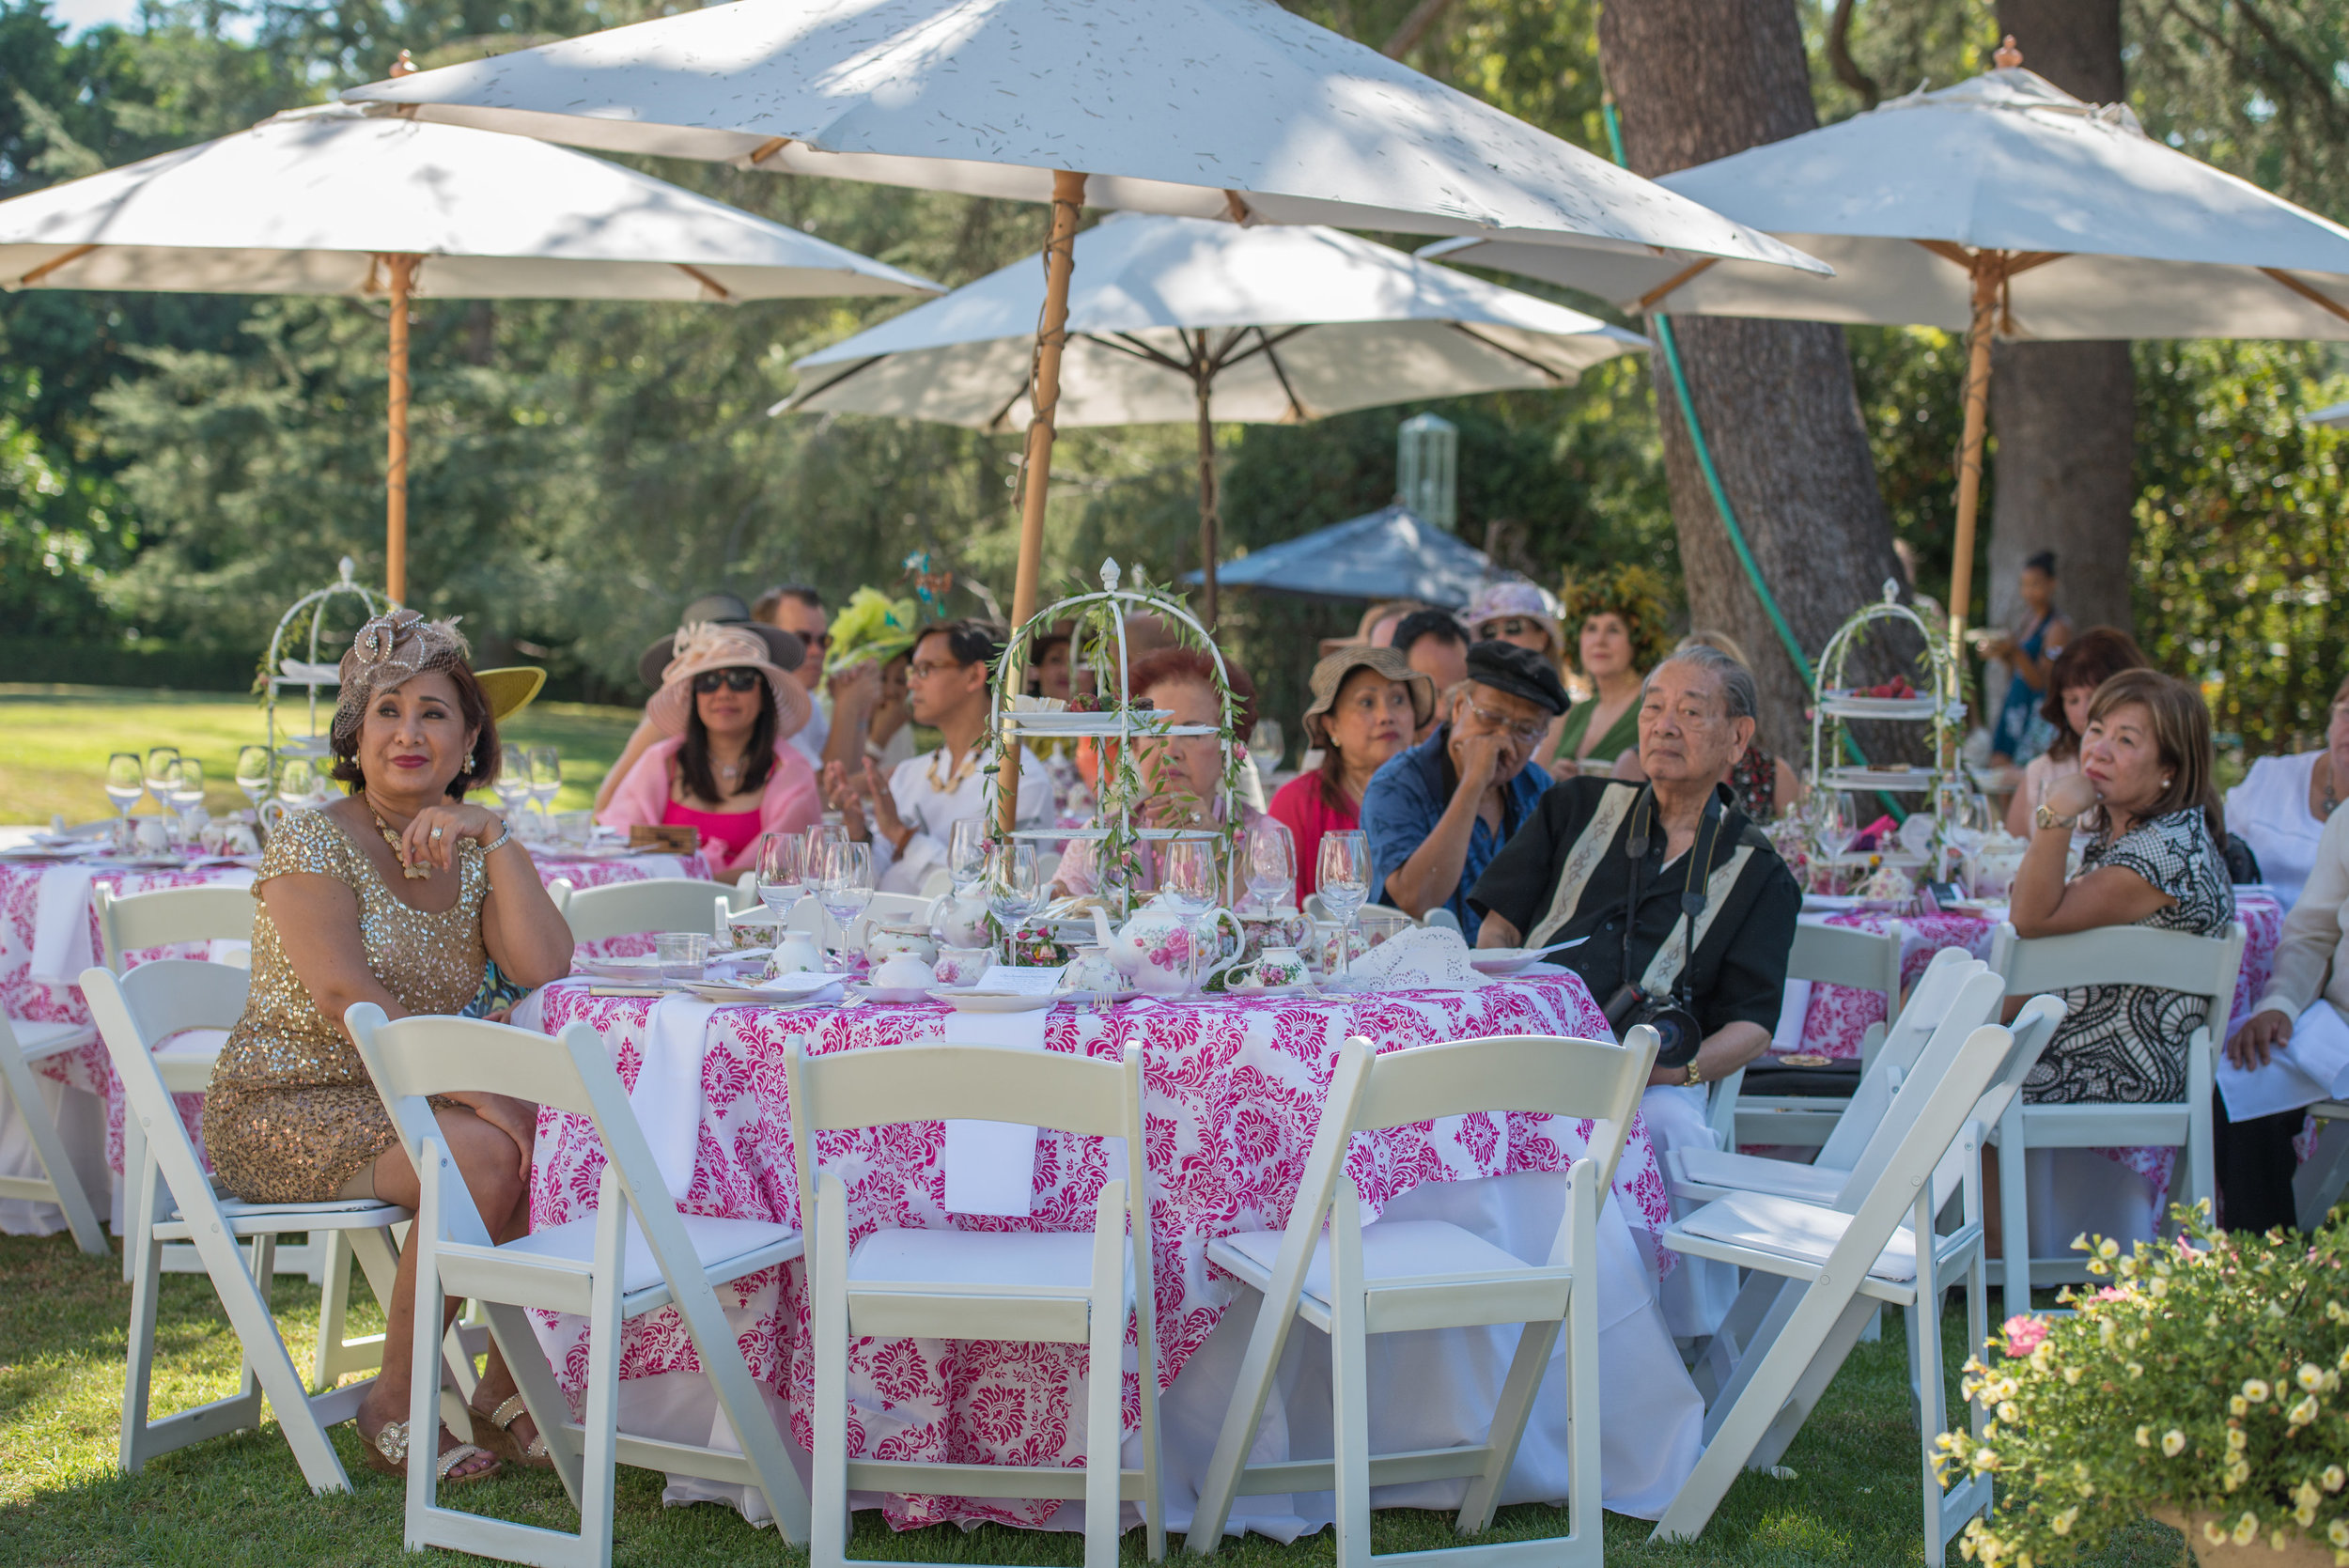 Ramona Haar watches fashion show with tea party attendees